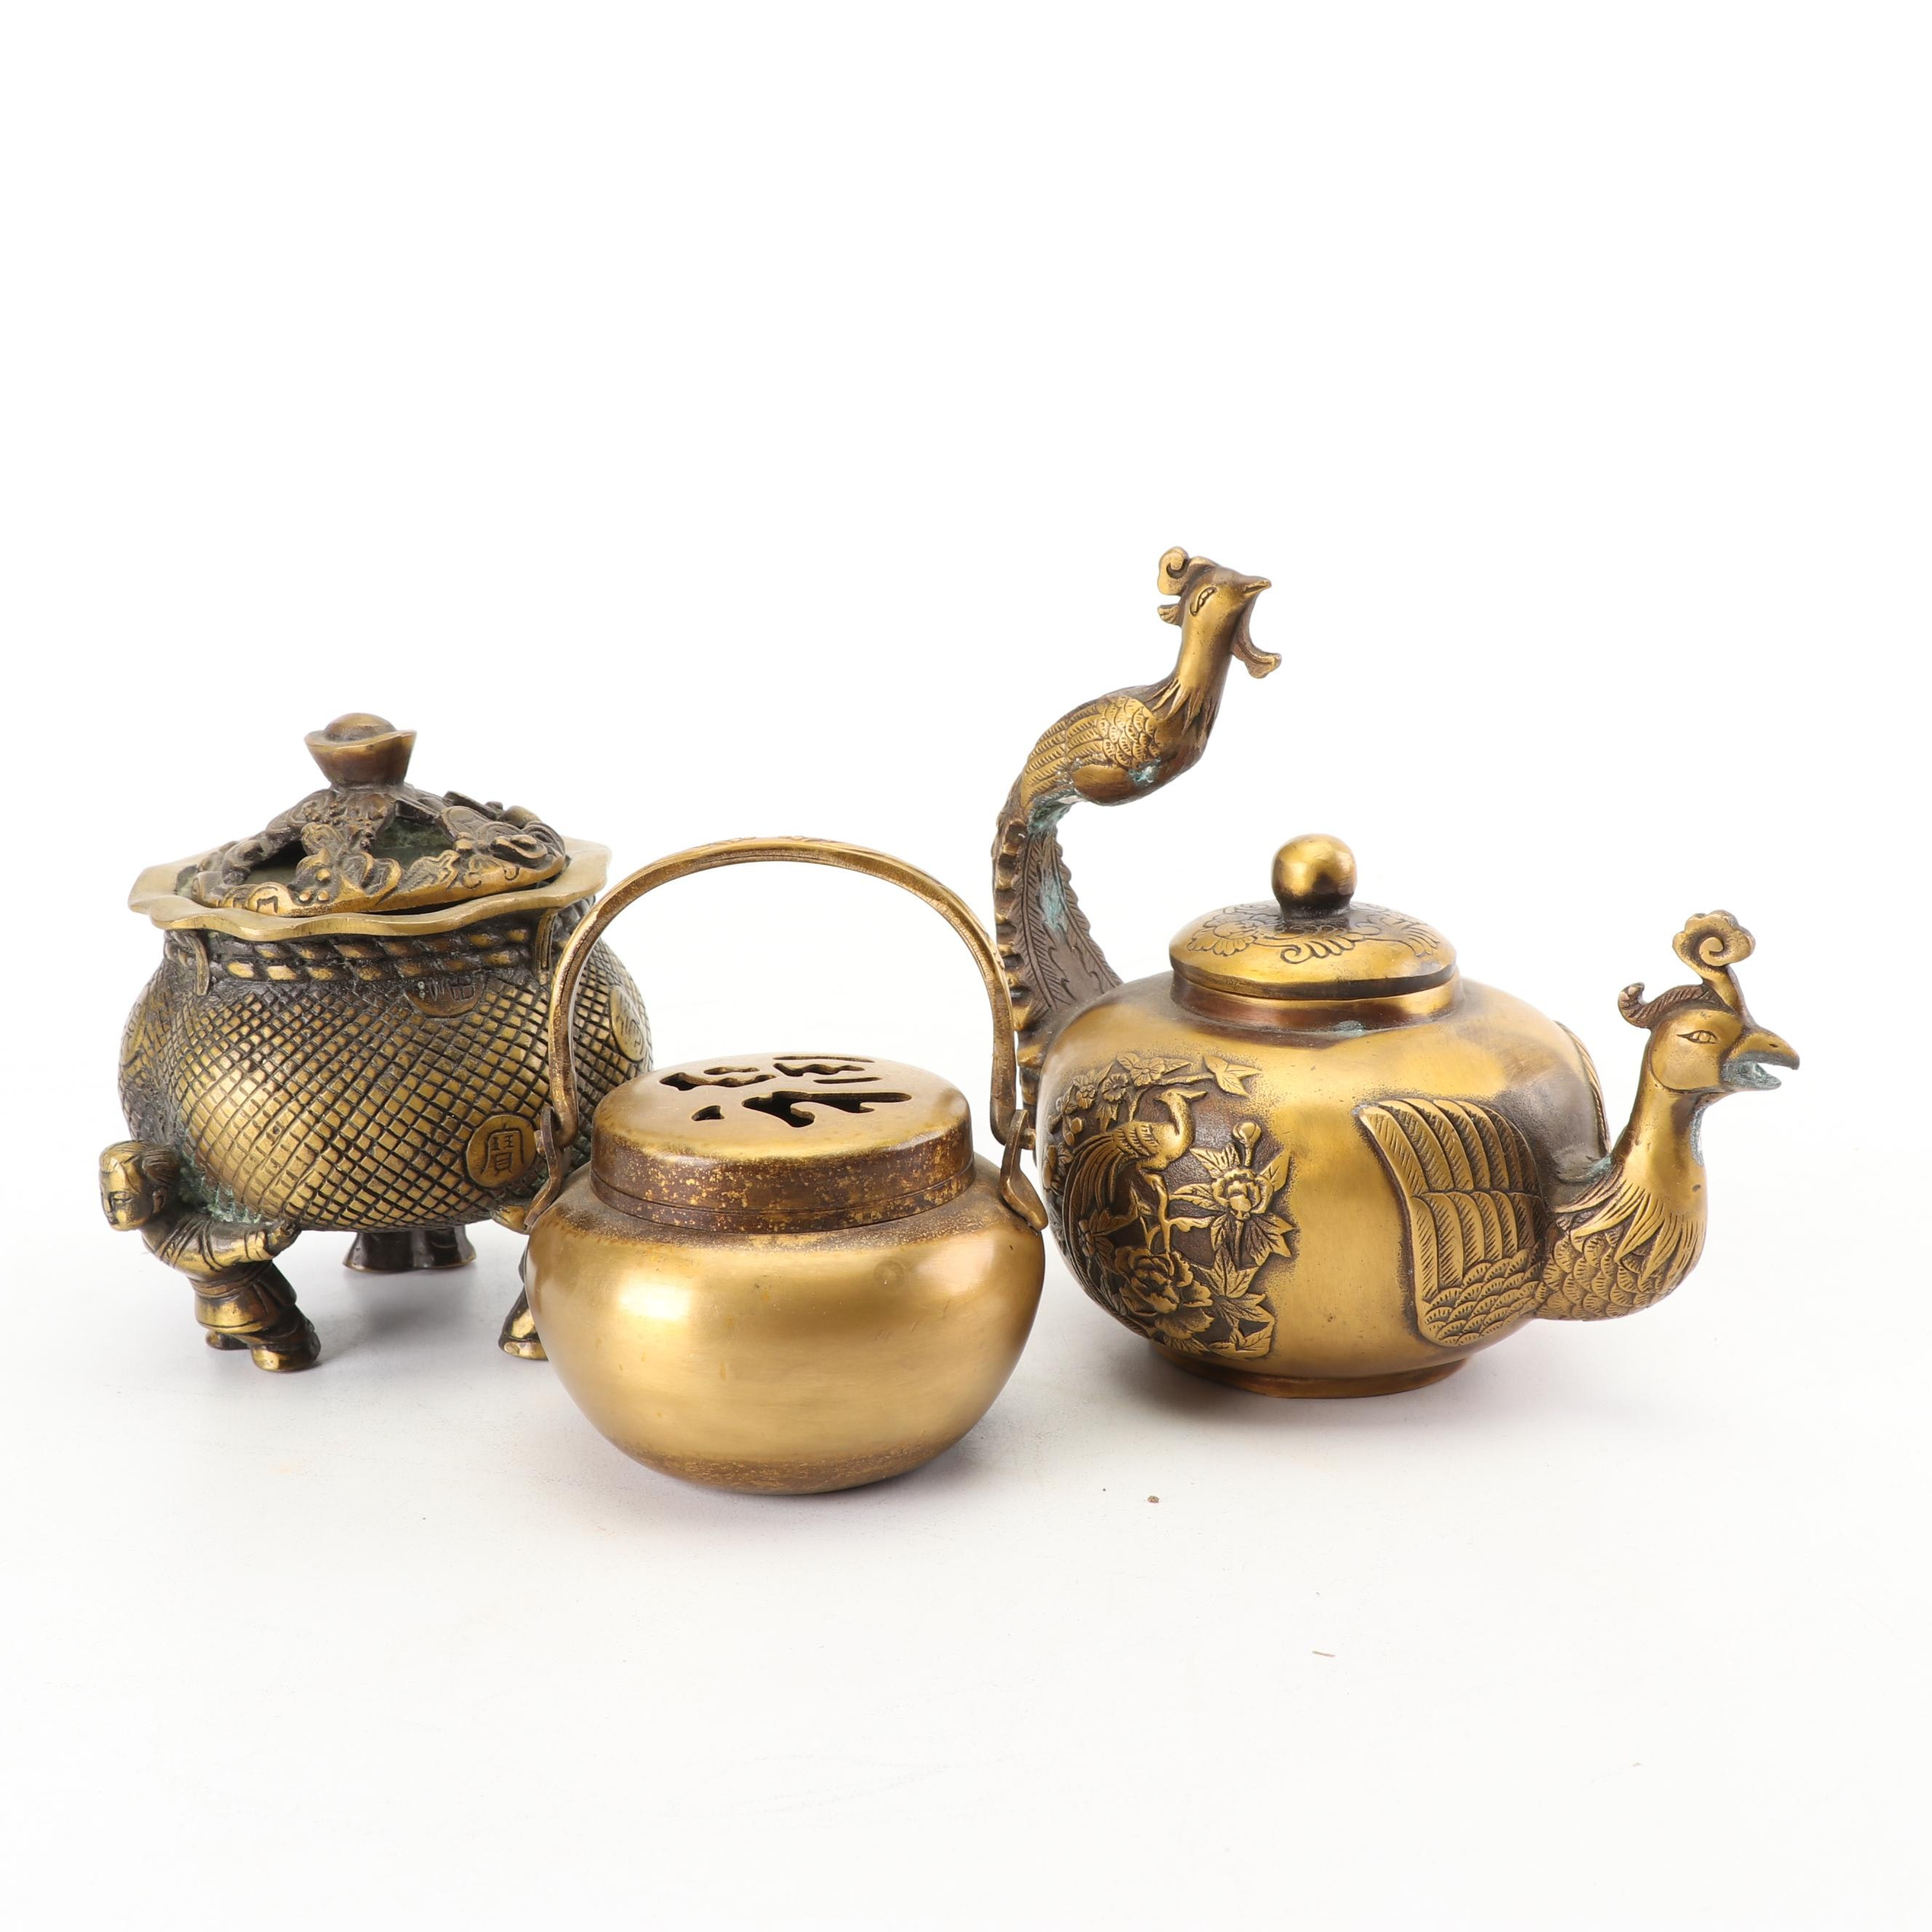 Chinese Metal Censers and Teapot